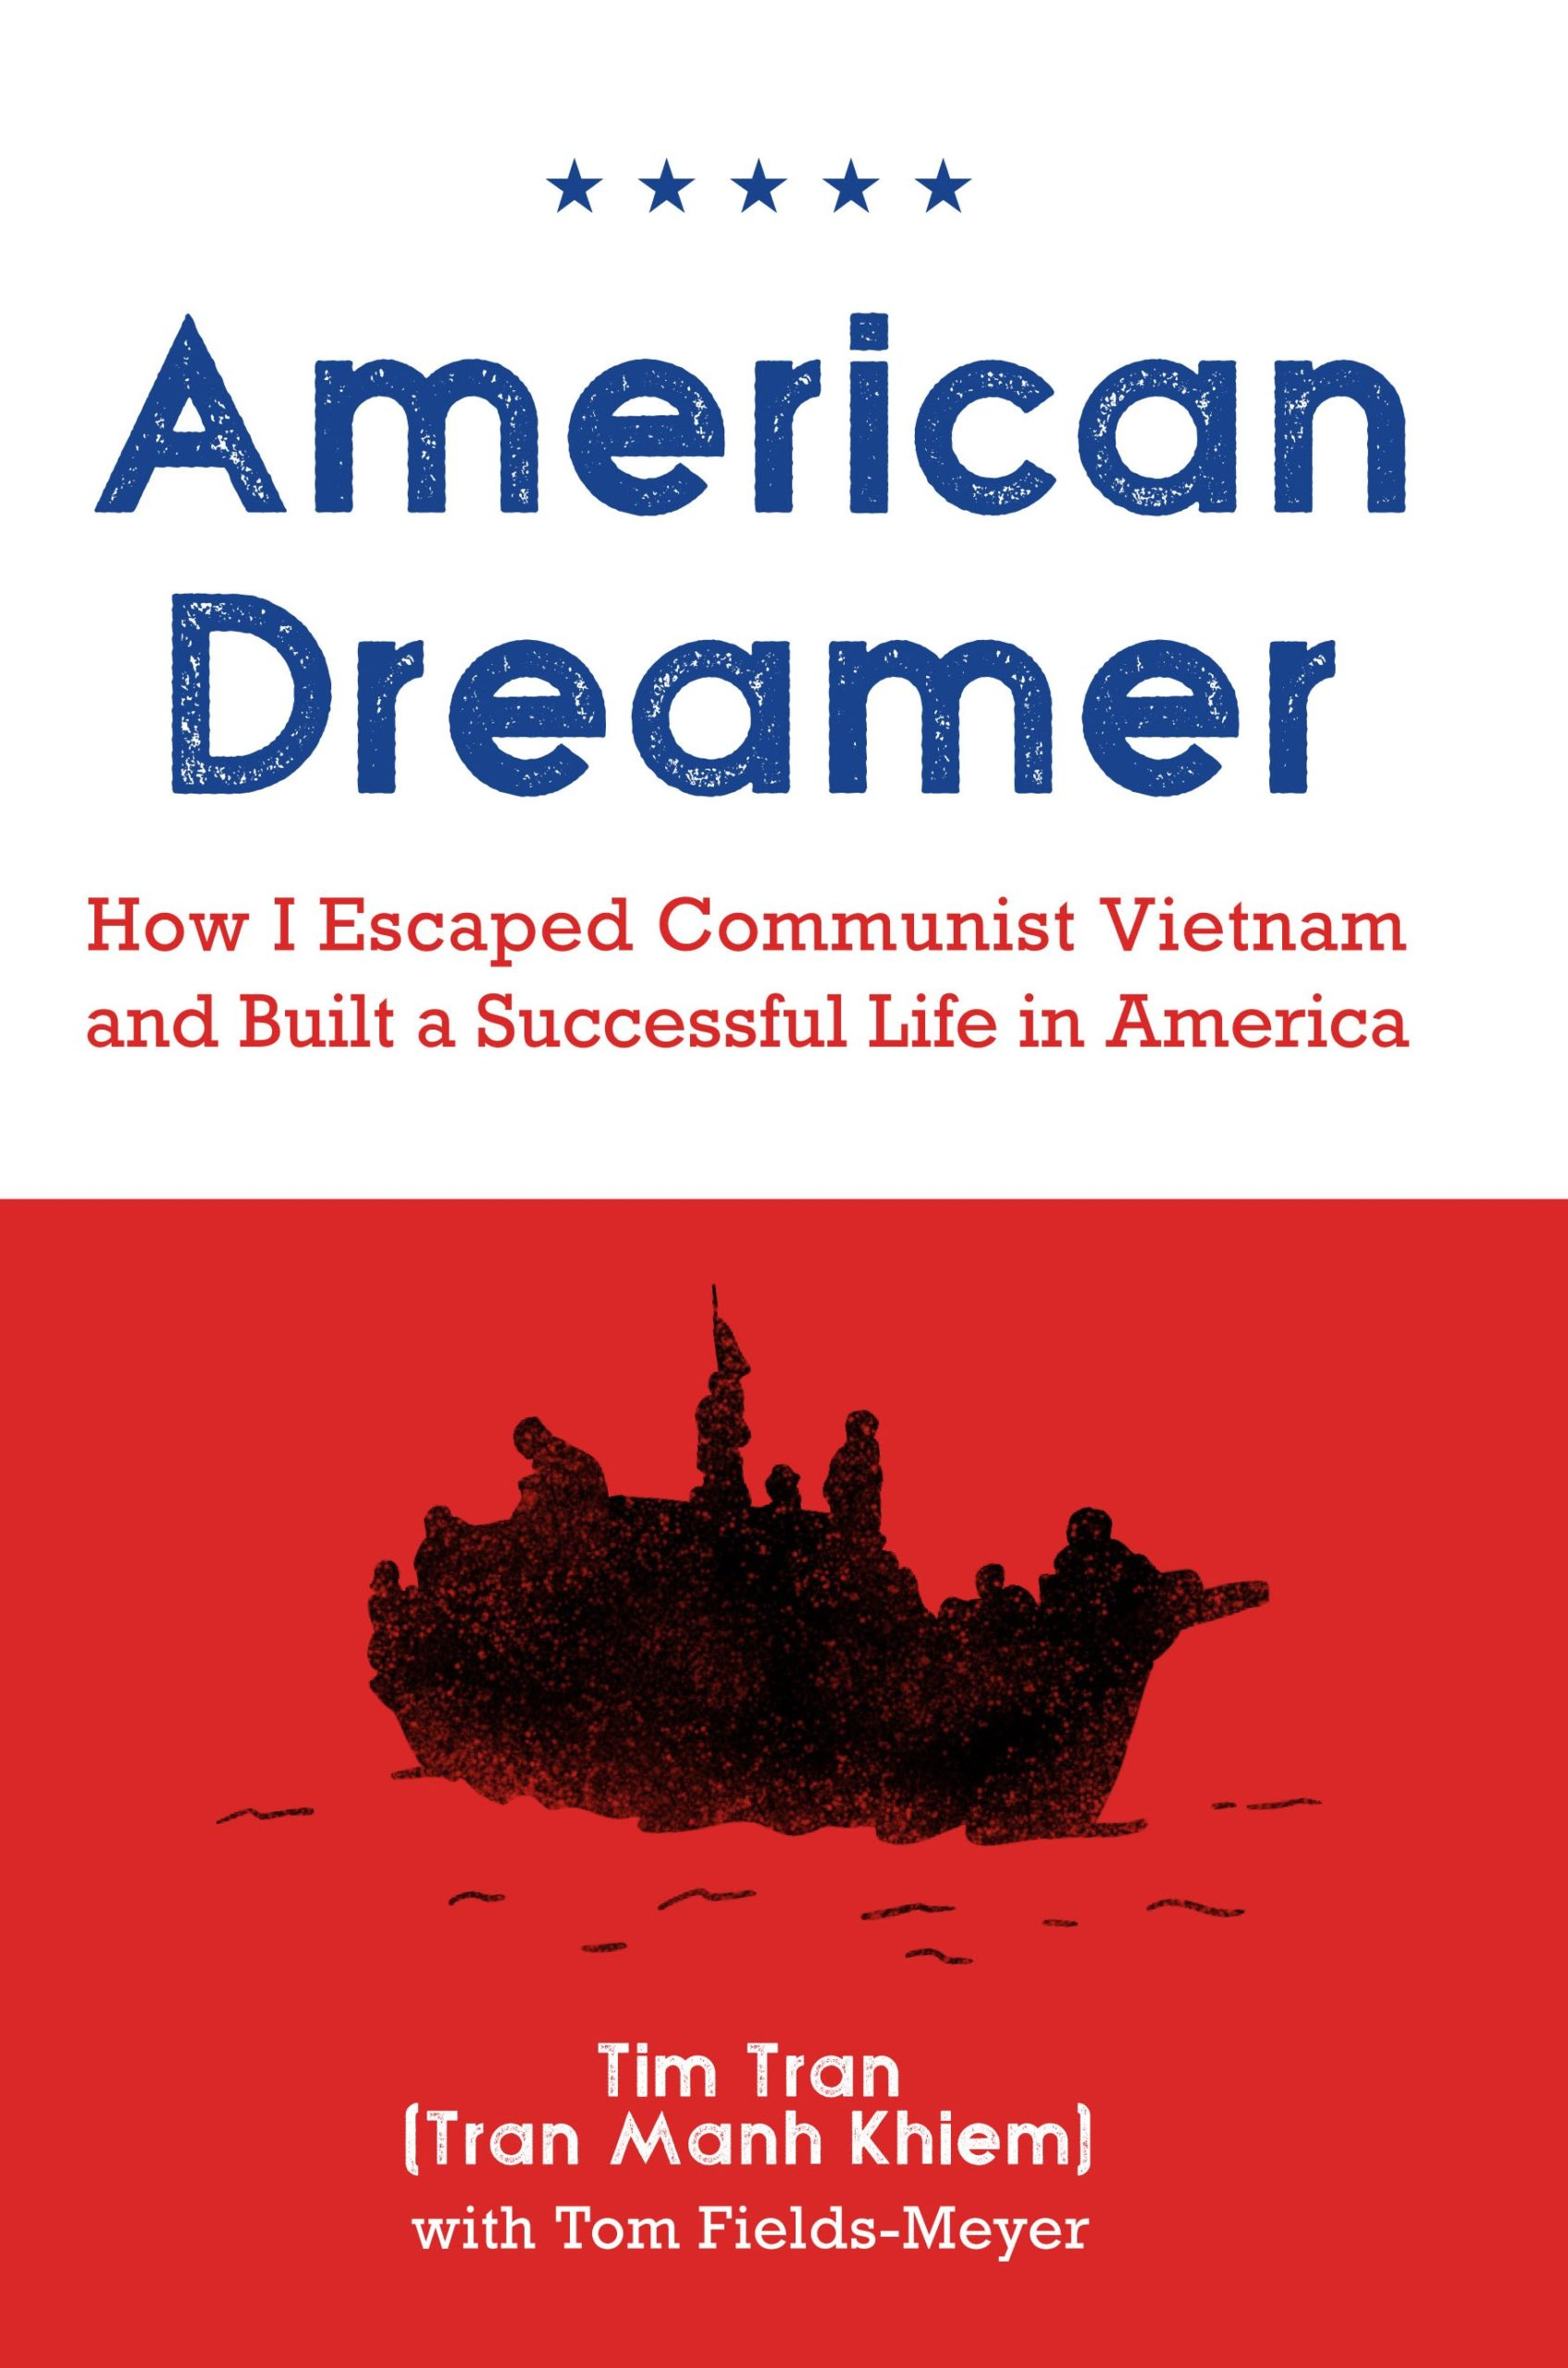 American Dreamer: How I Escaped Communist Vietnam and Built a Successful Life in America